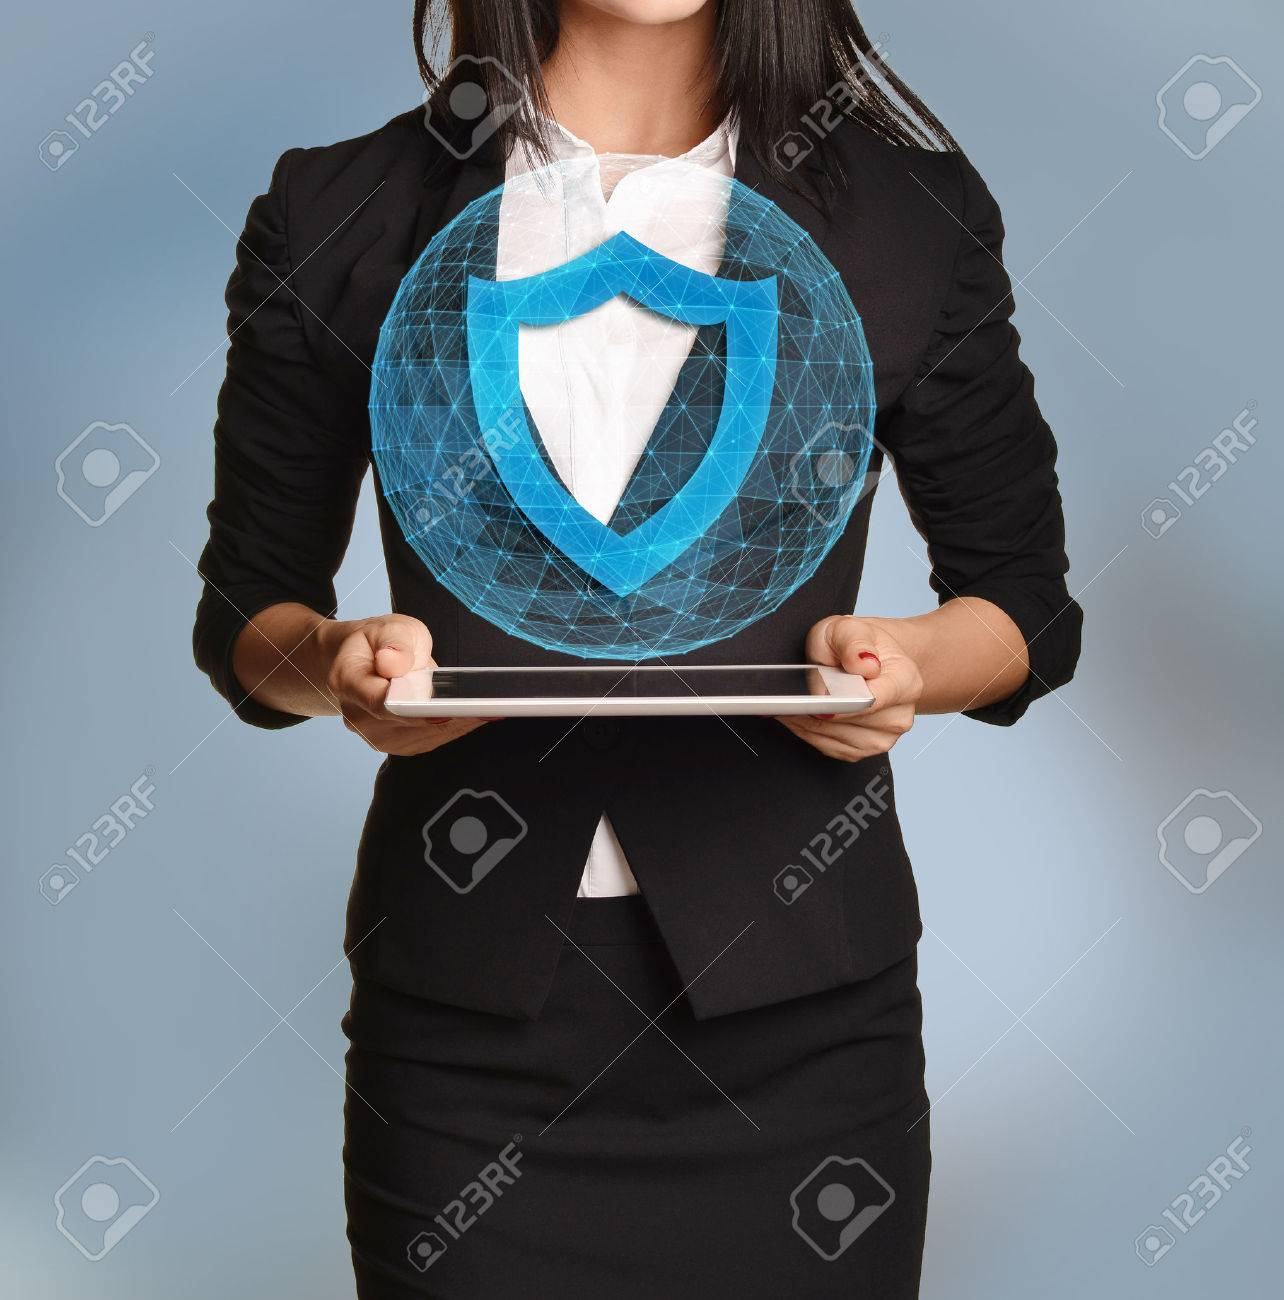 Beautiful girl holding a tablet with digital network globe and shield icon. - 47964254